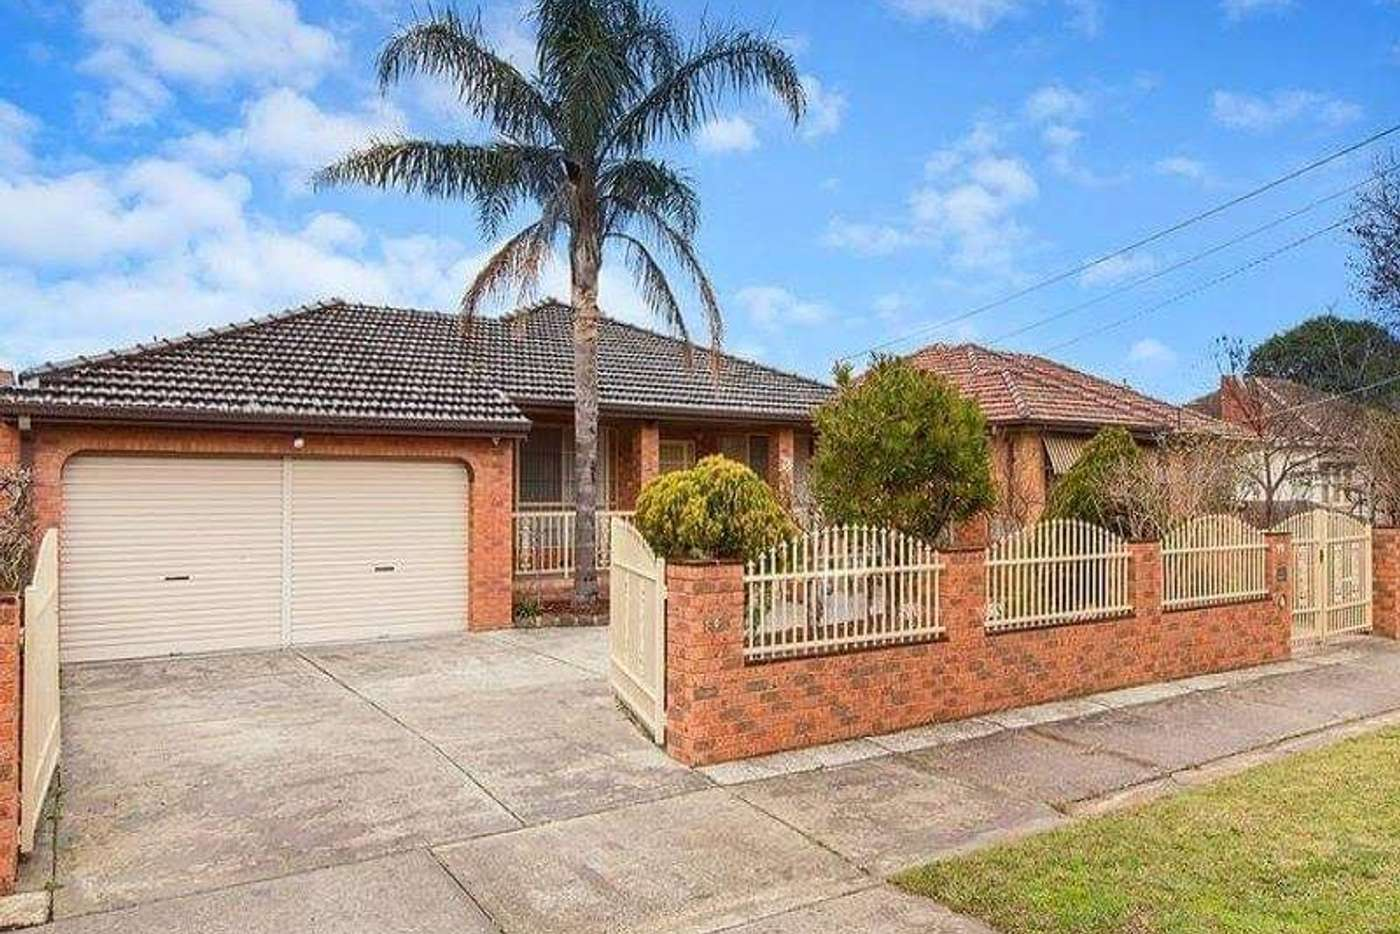 Main view of Homely house listing, 78 Carmichael Road, Oakleigh East VIC 3166